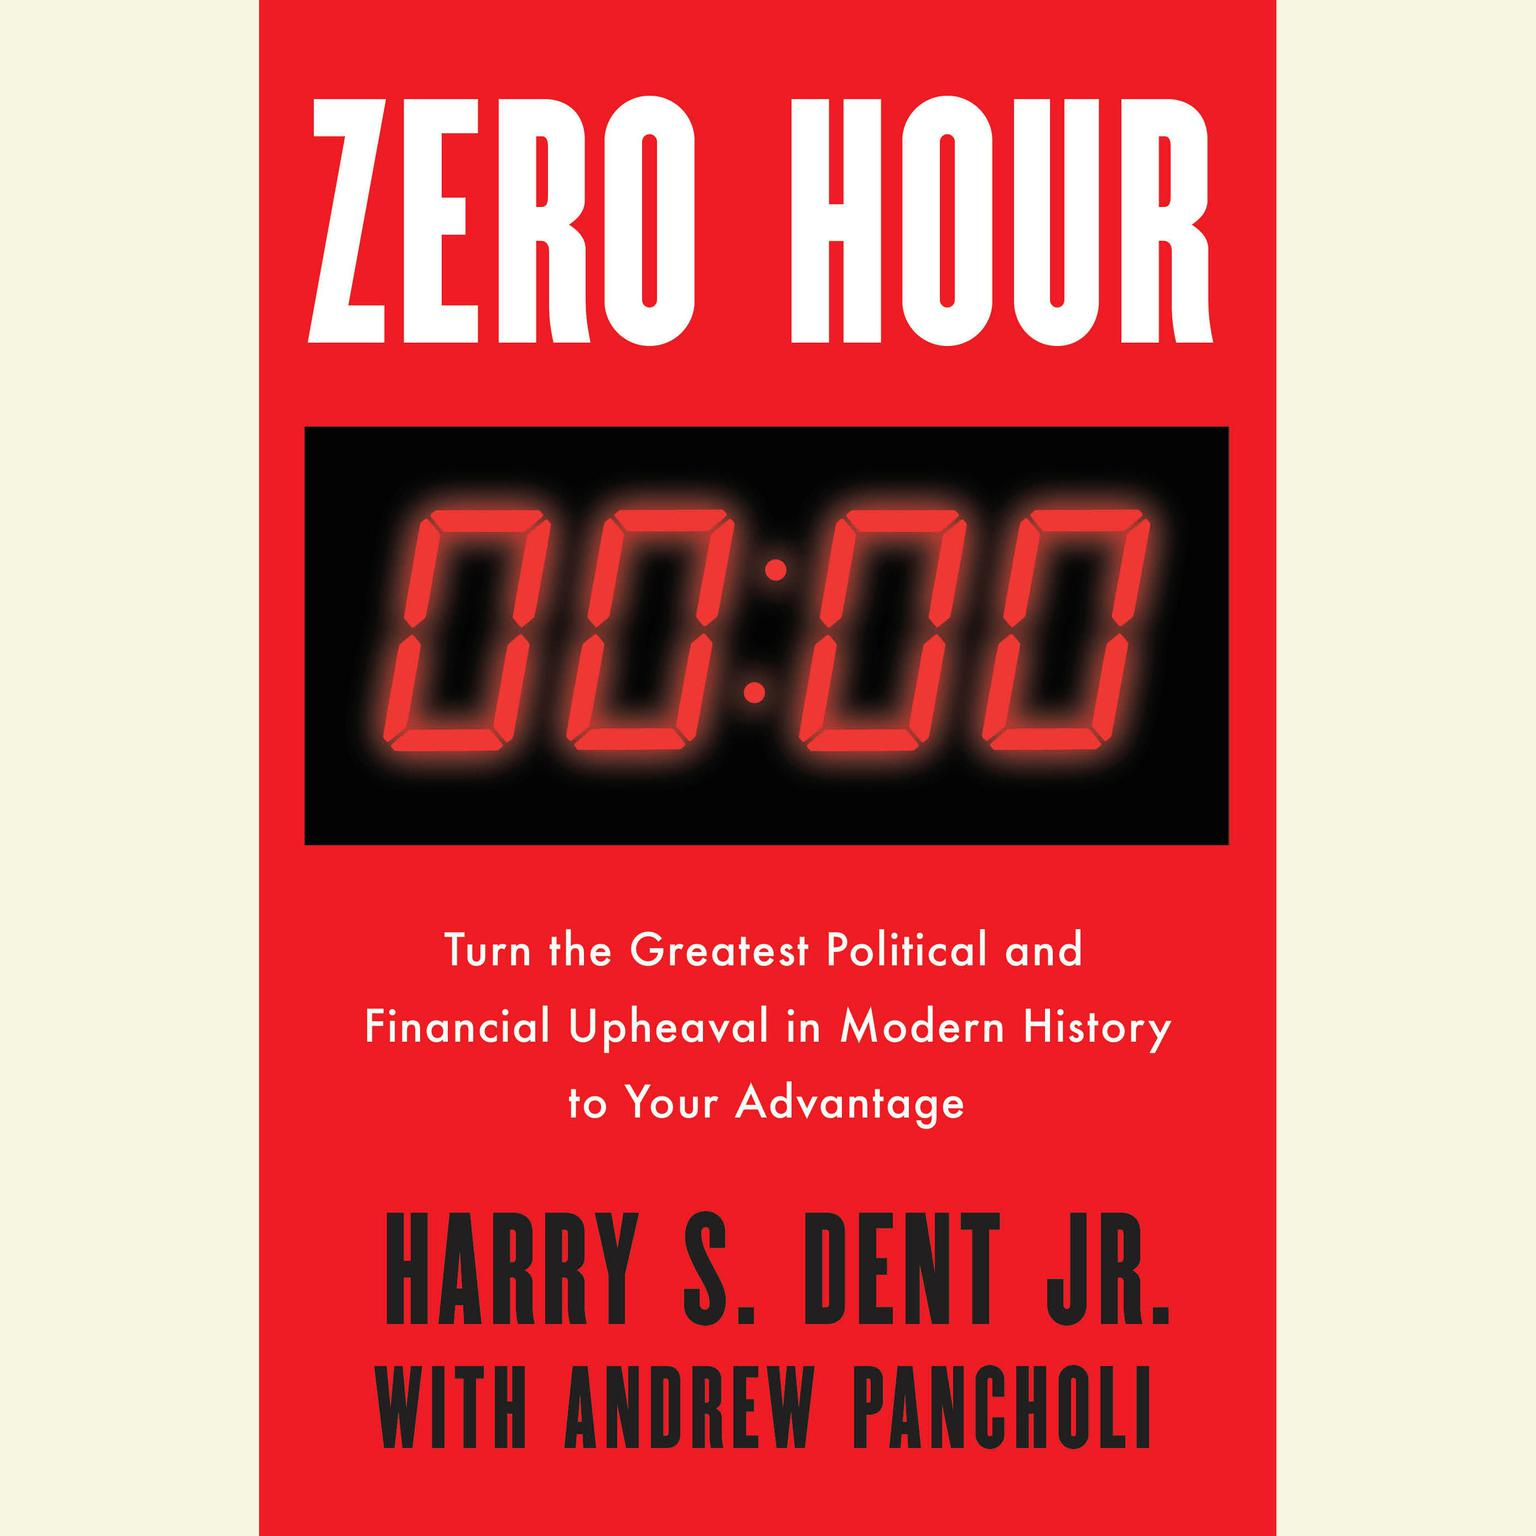 Zero Hour: Turn the Greatest Political and Financial Upheaval in Modern History to Your Advantage Audiobook, by Harry S. Dent